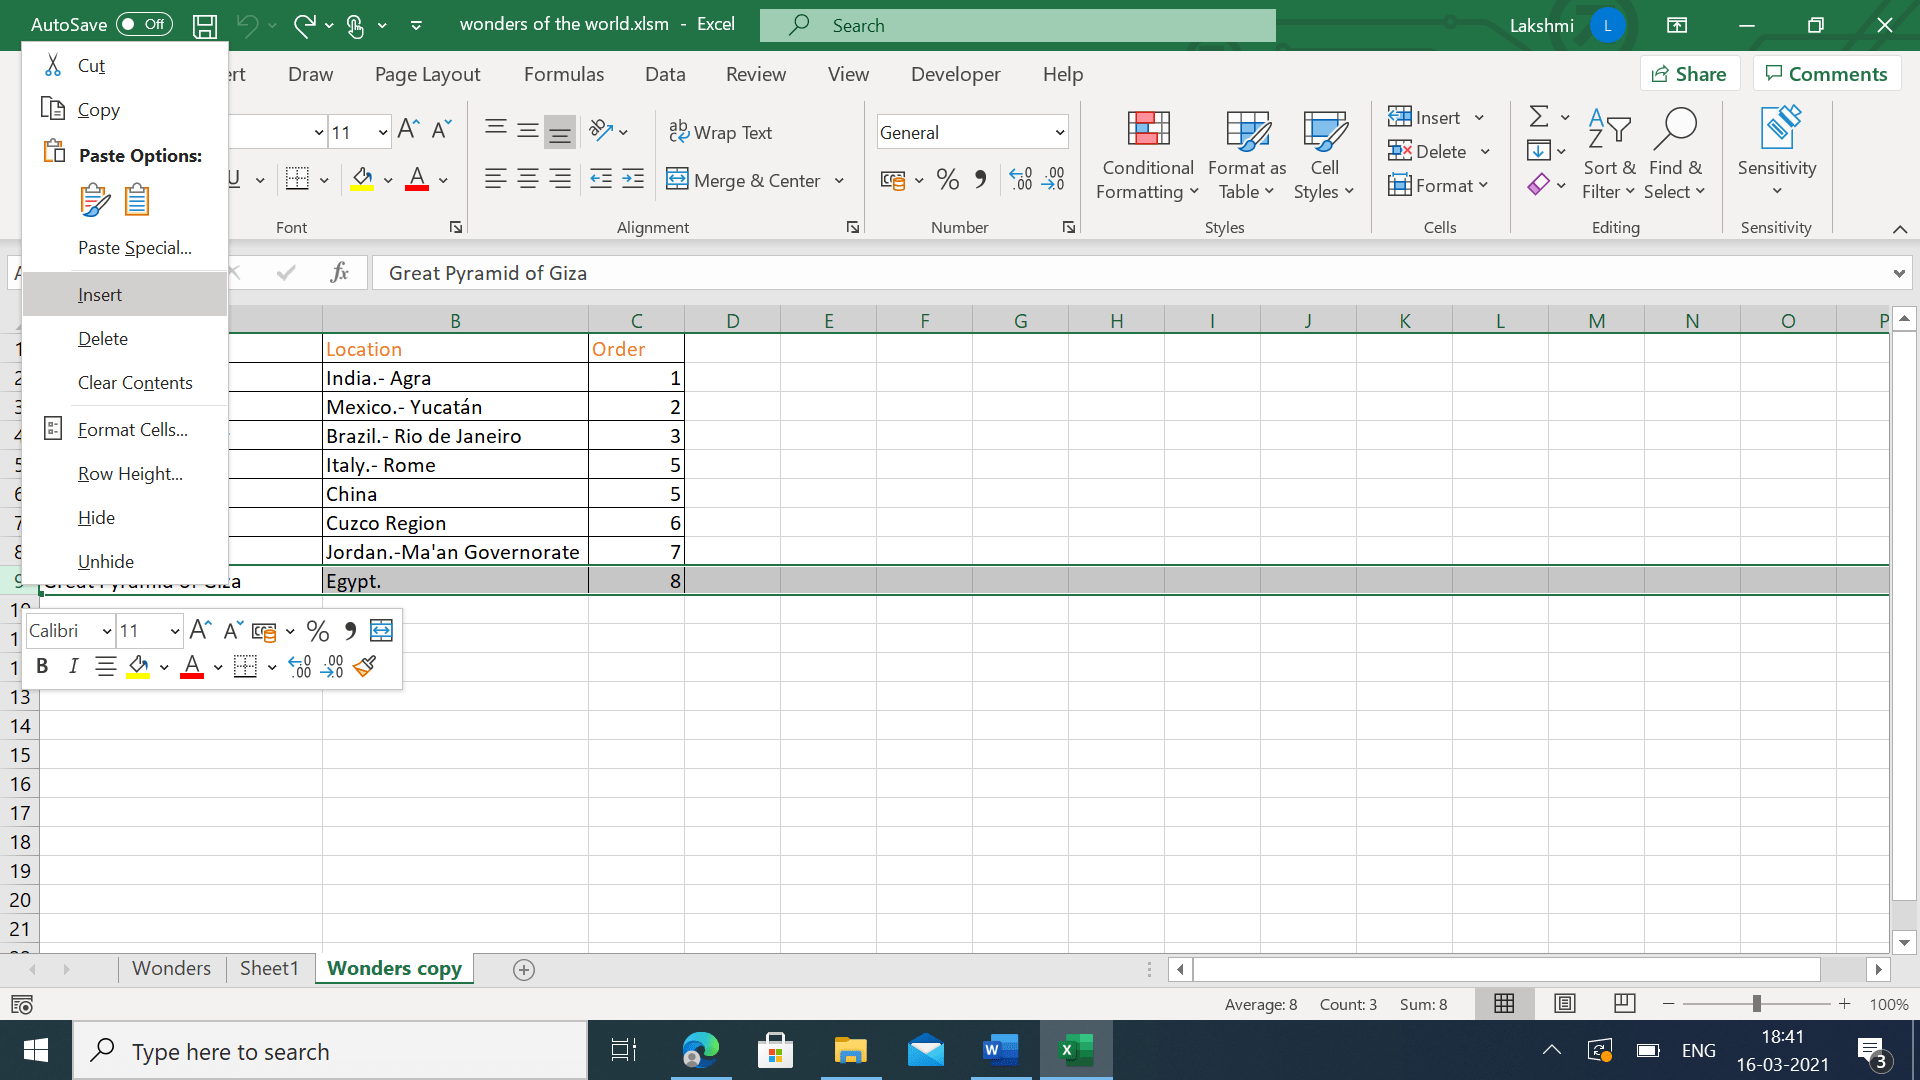 Selecting insert from the context menu in Excel